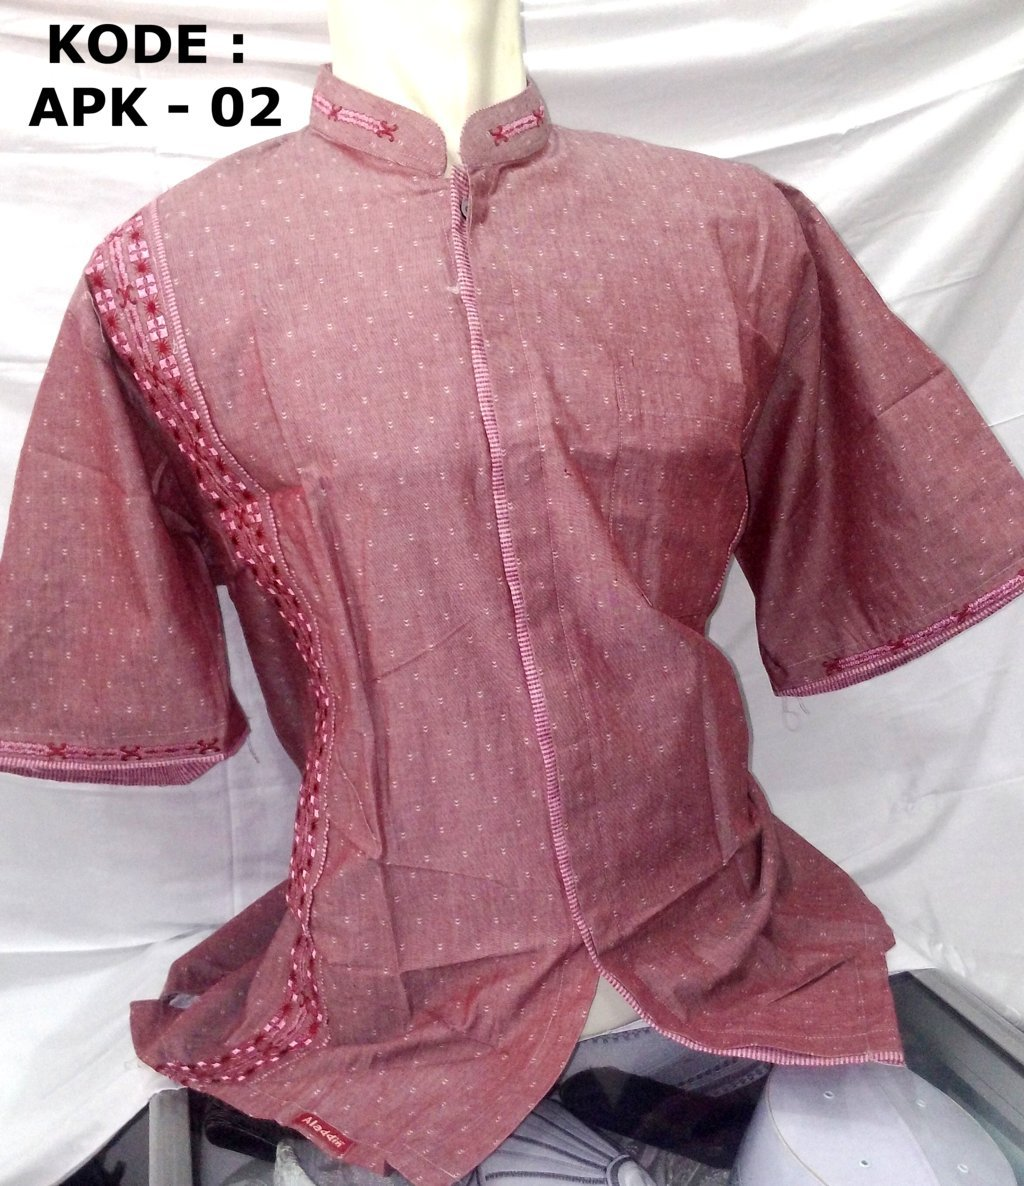 baju koko pendek (FILEminimizer)